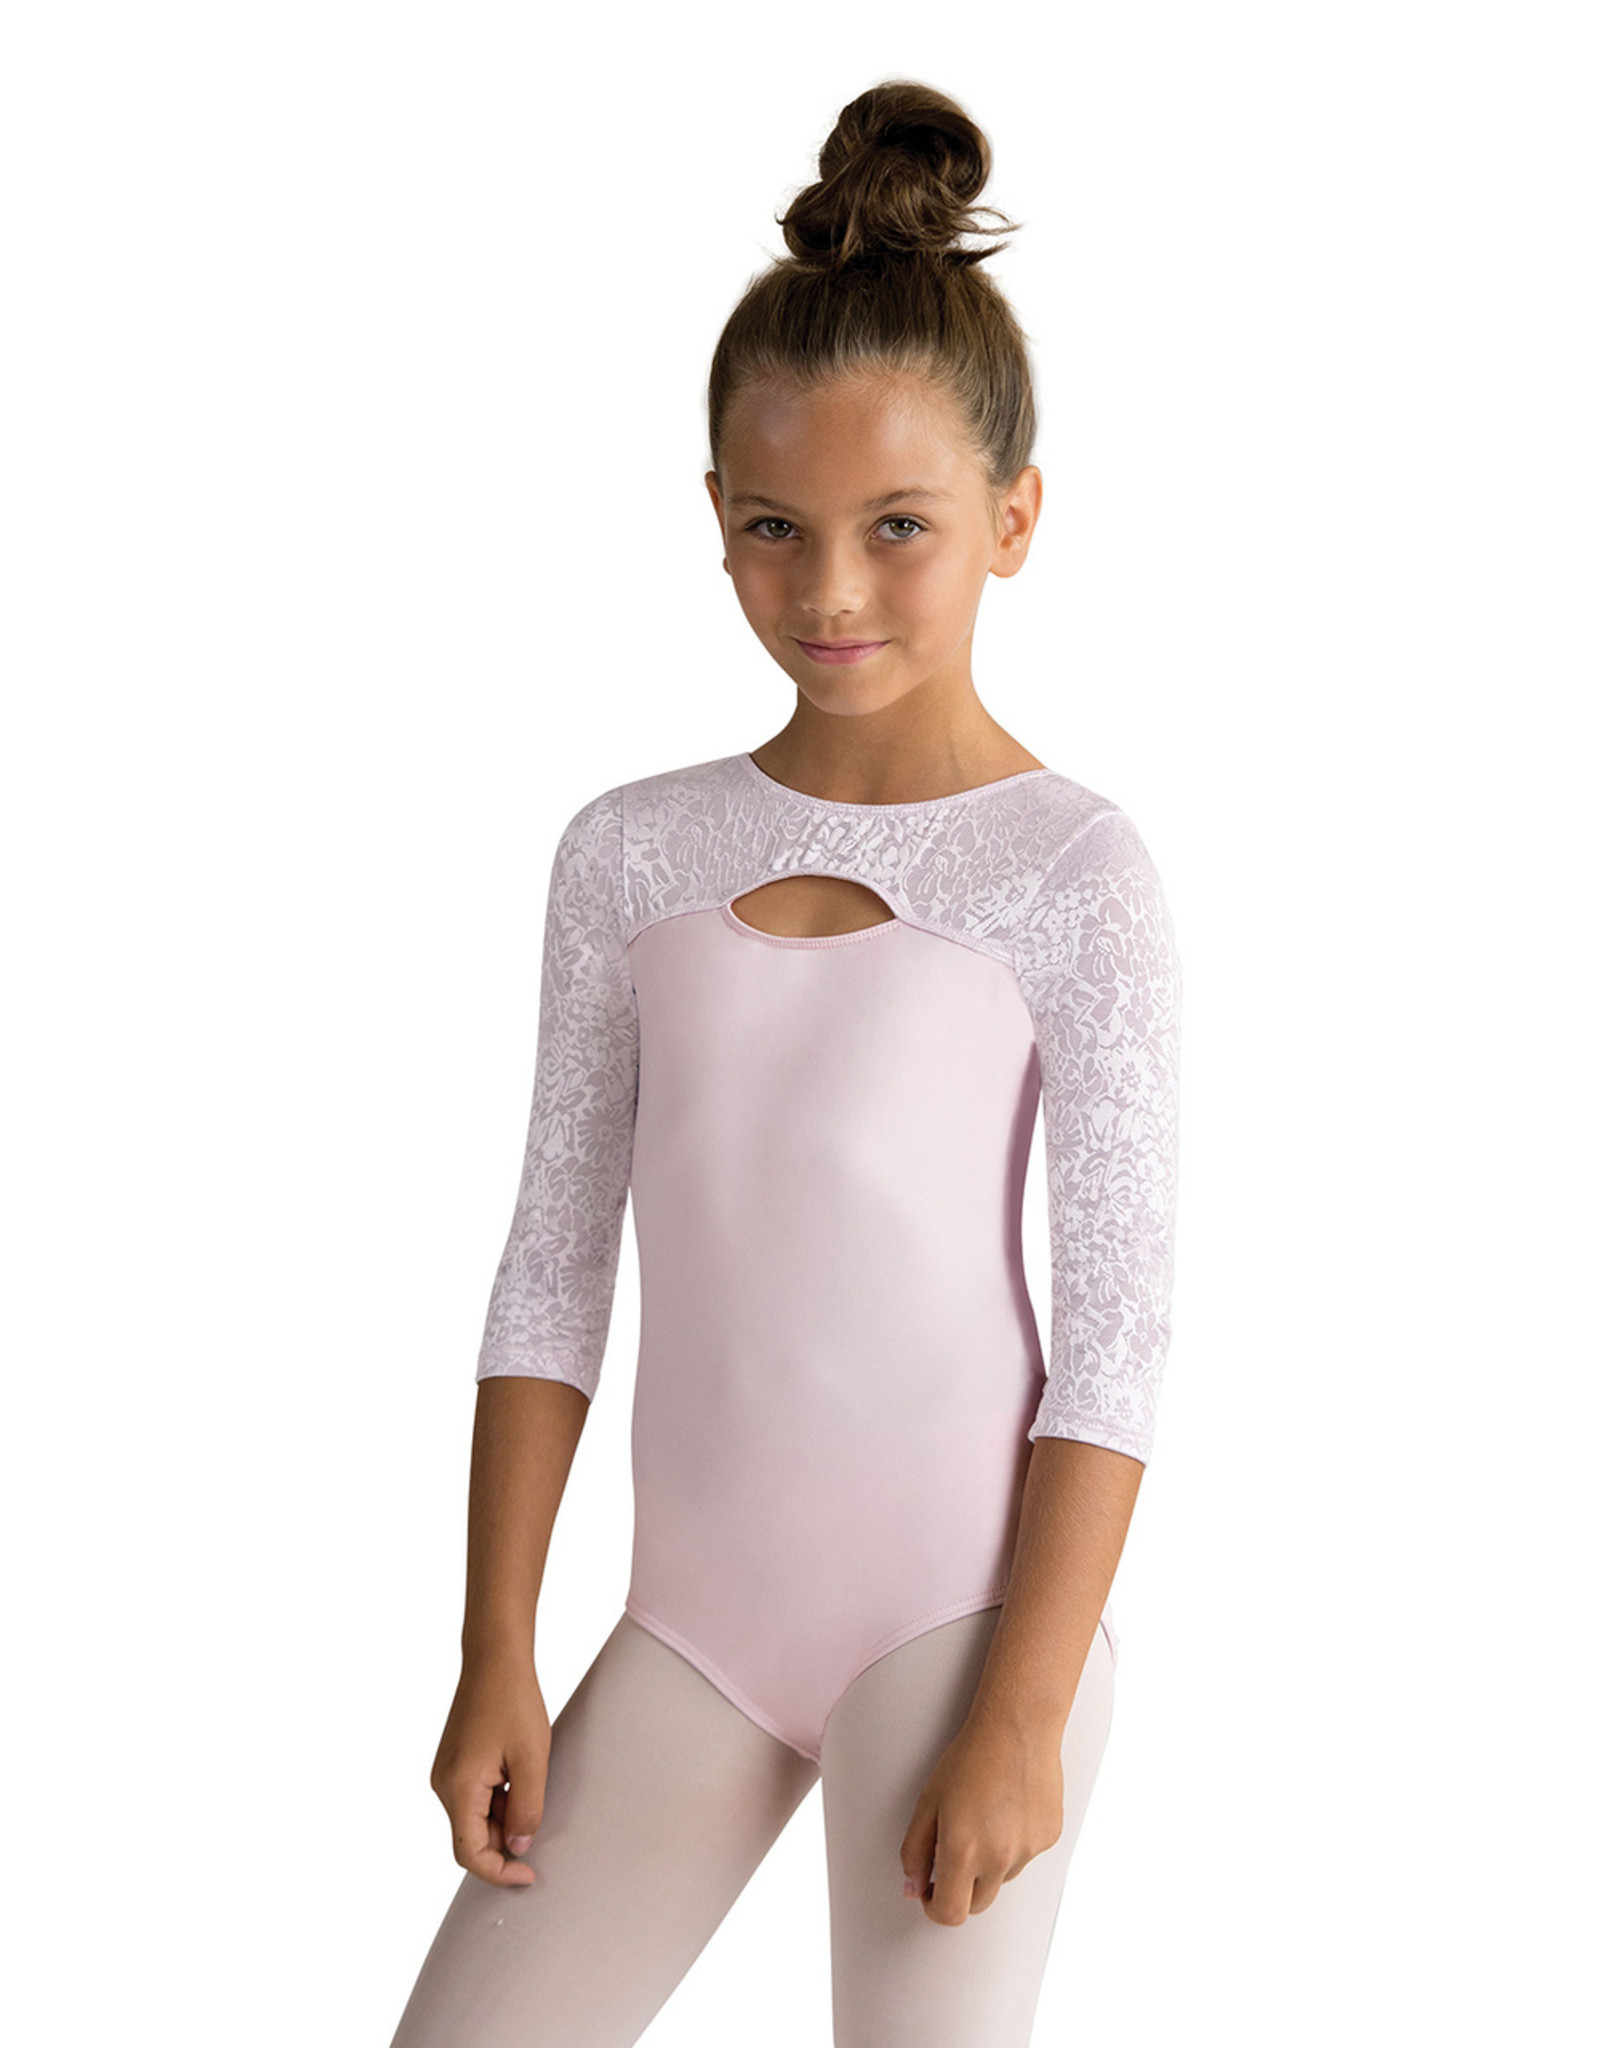 MOTIONWEAR MAILLOT ENFANT MANCHES 3/4 (2390)